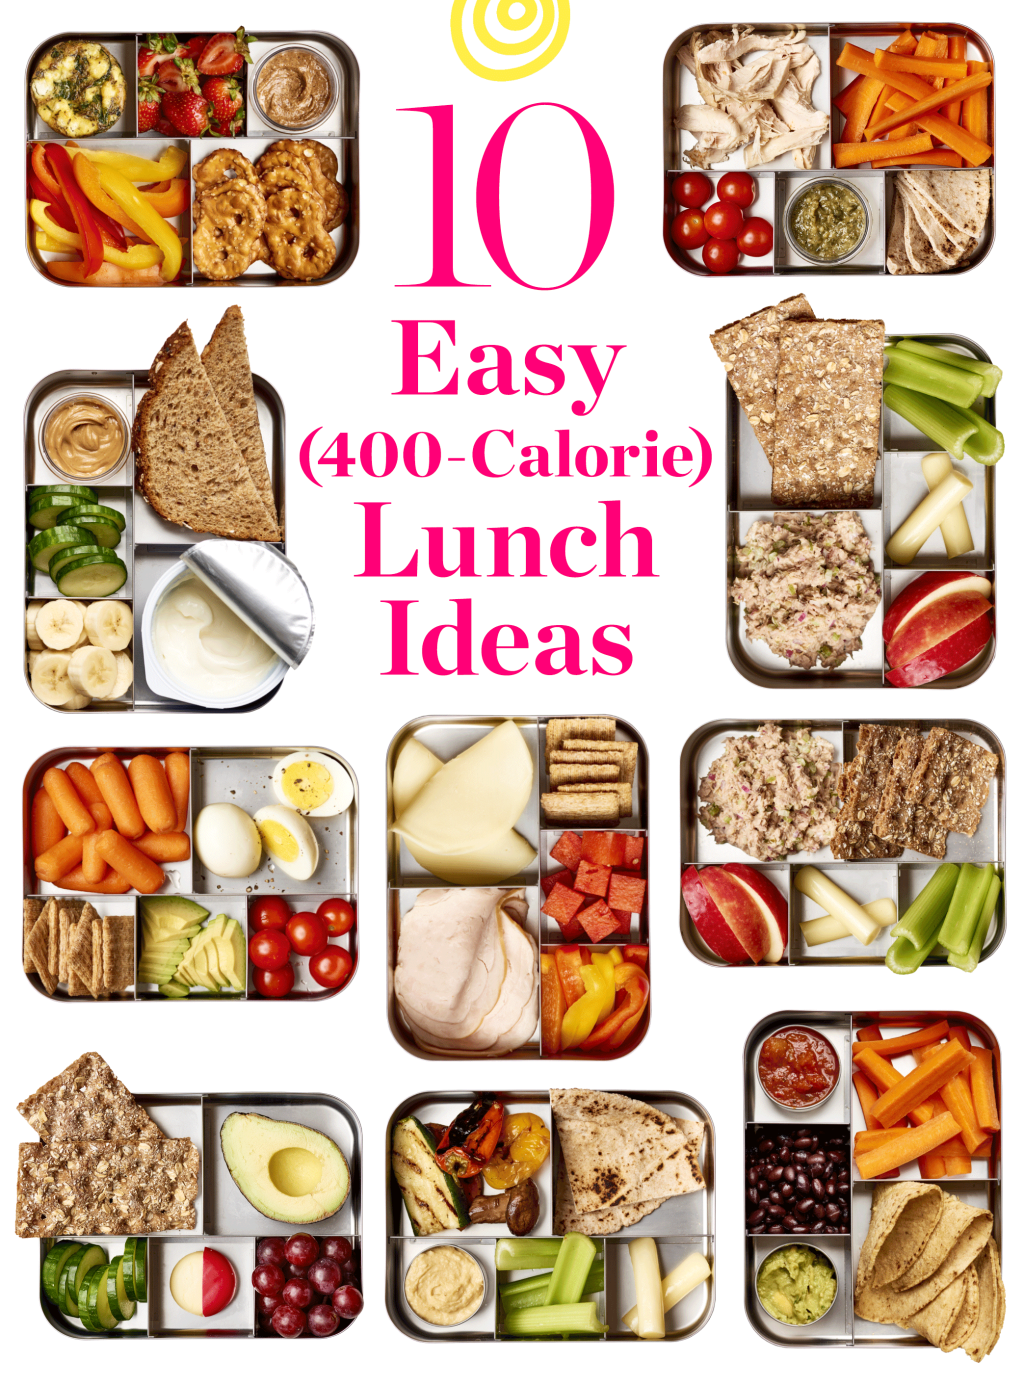 10 Quick and Easy Lunch Ideas Under 400 Calories images